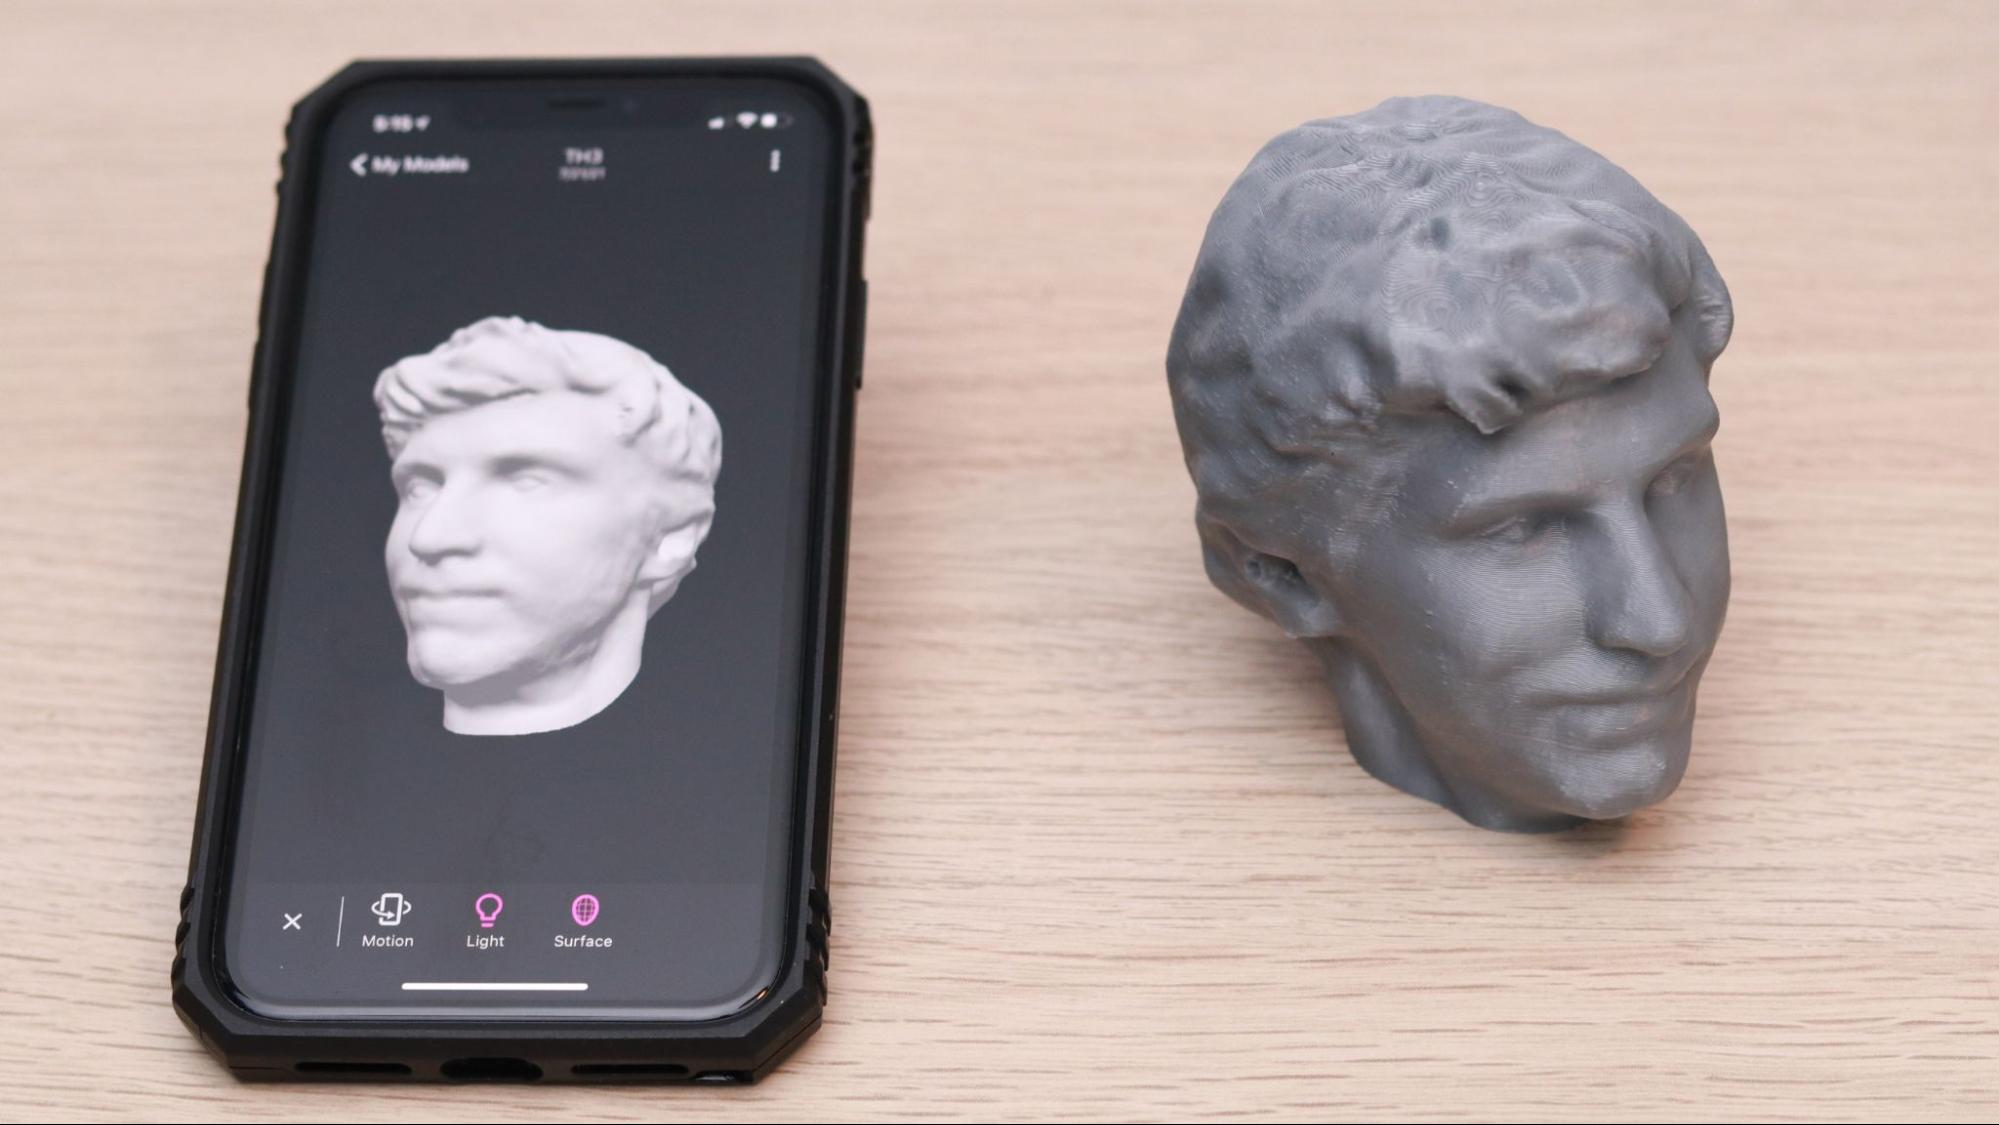 How to Make a 3D Printed Selfie With Your Phone